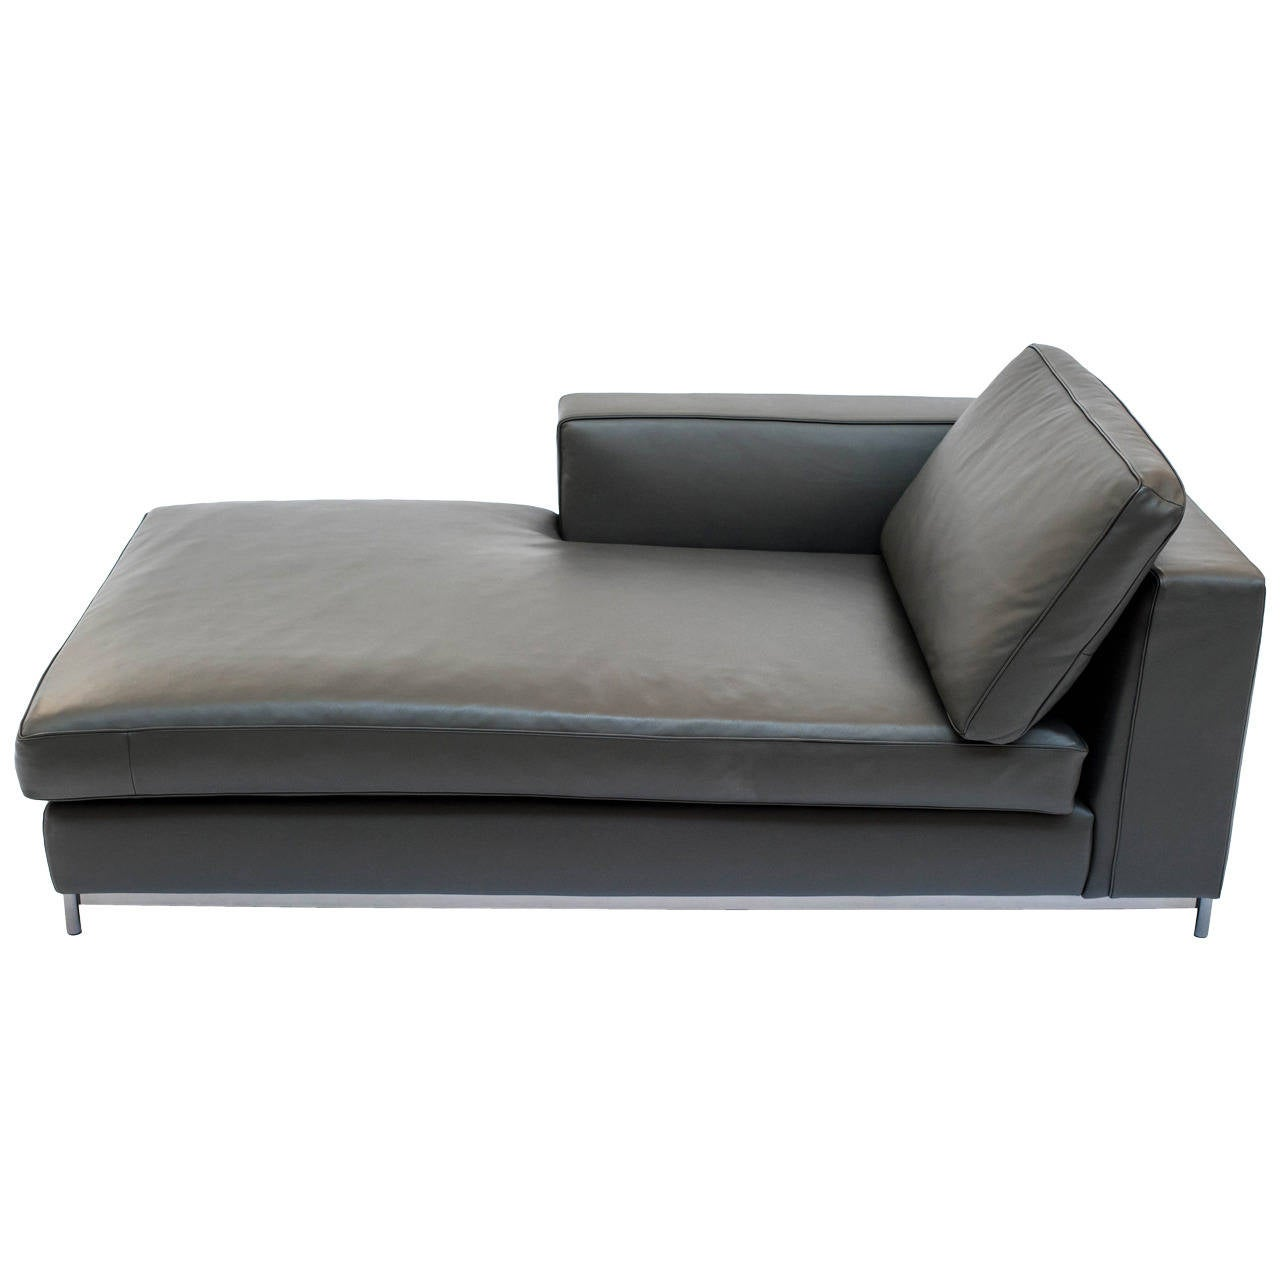 Chaise longue albers by rodolfo dordoni for minotti at 1stdibs - Chaise longue chilienne ...